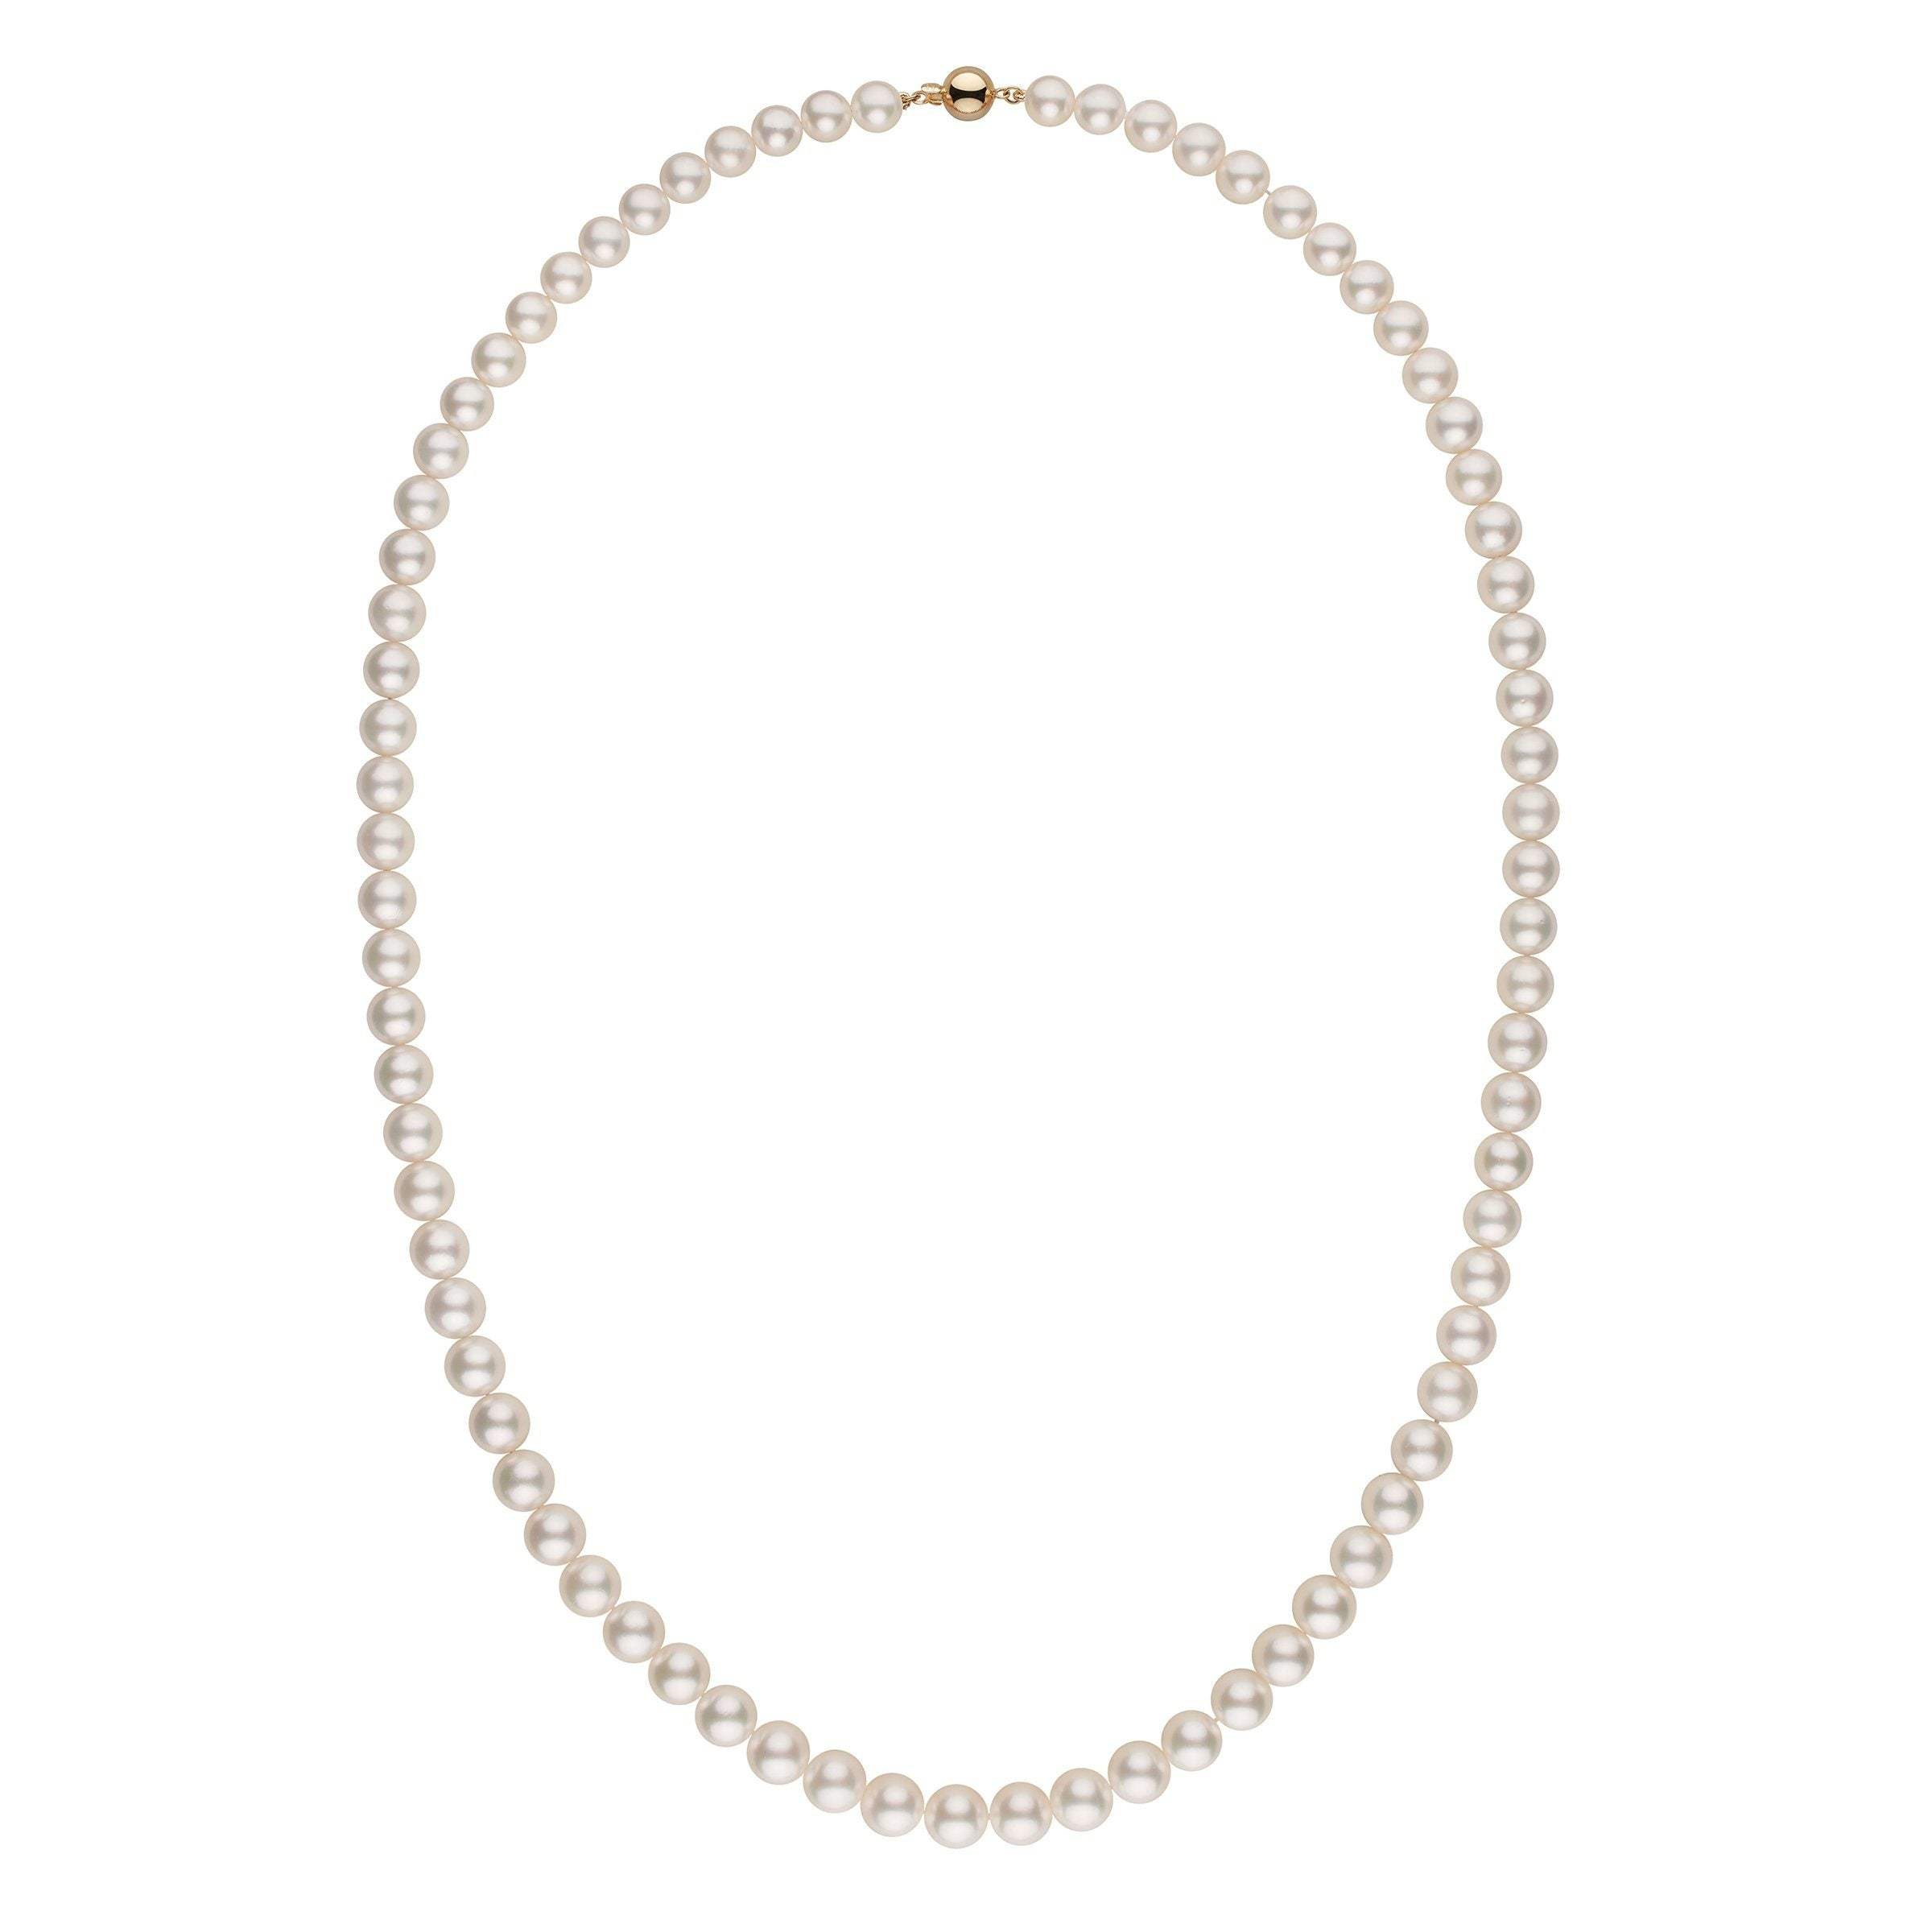 The Arpeggio White South Sea Pearl Necklace